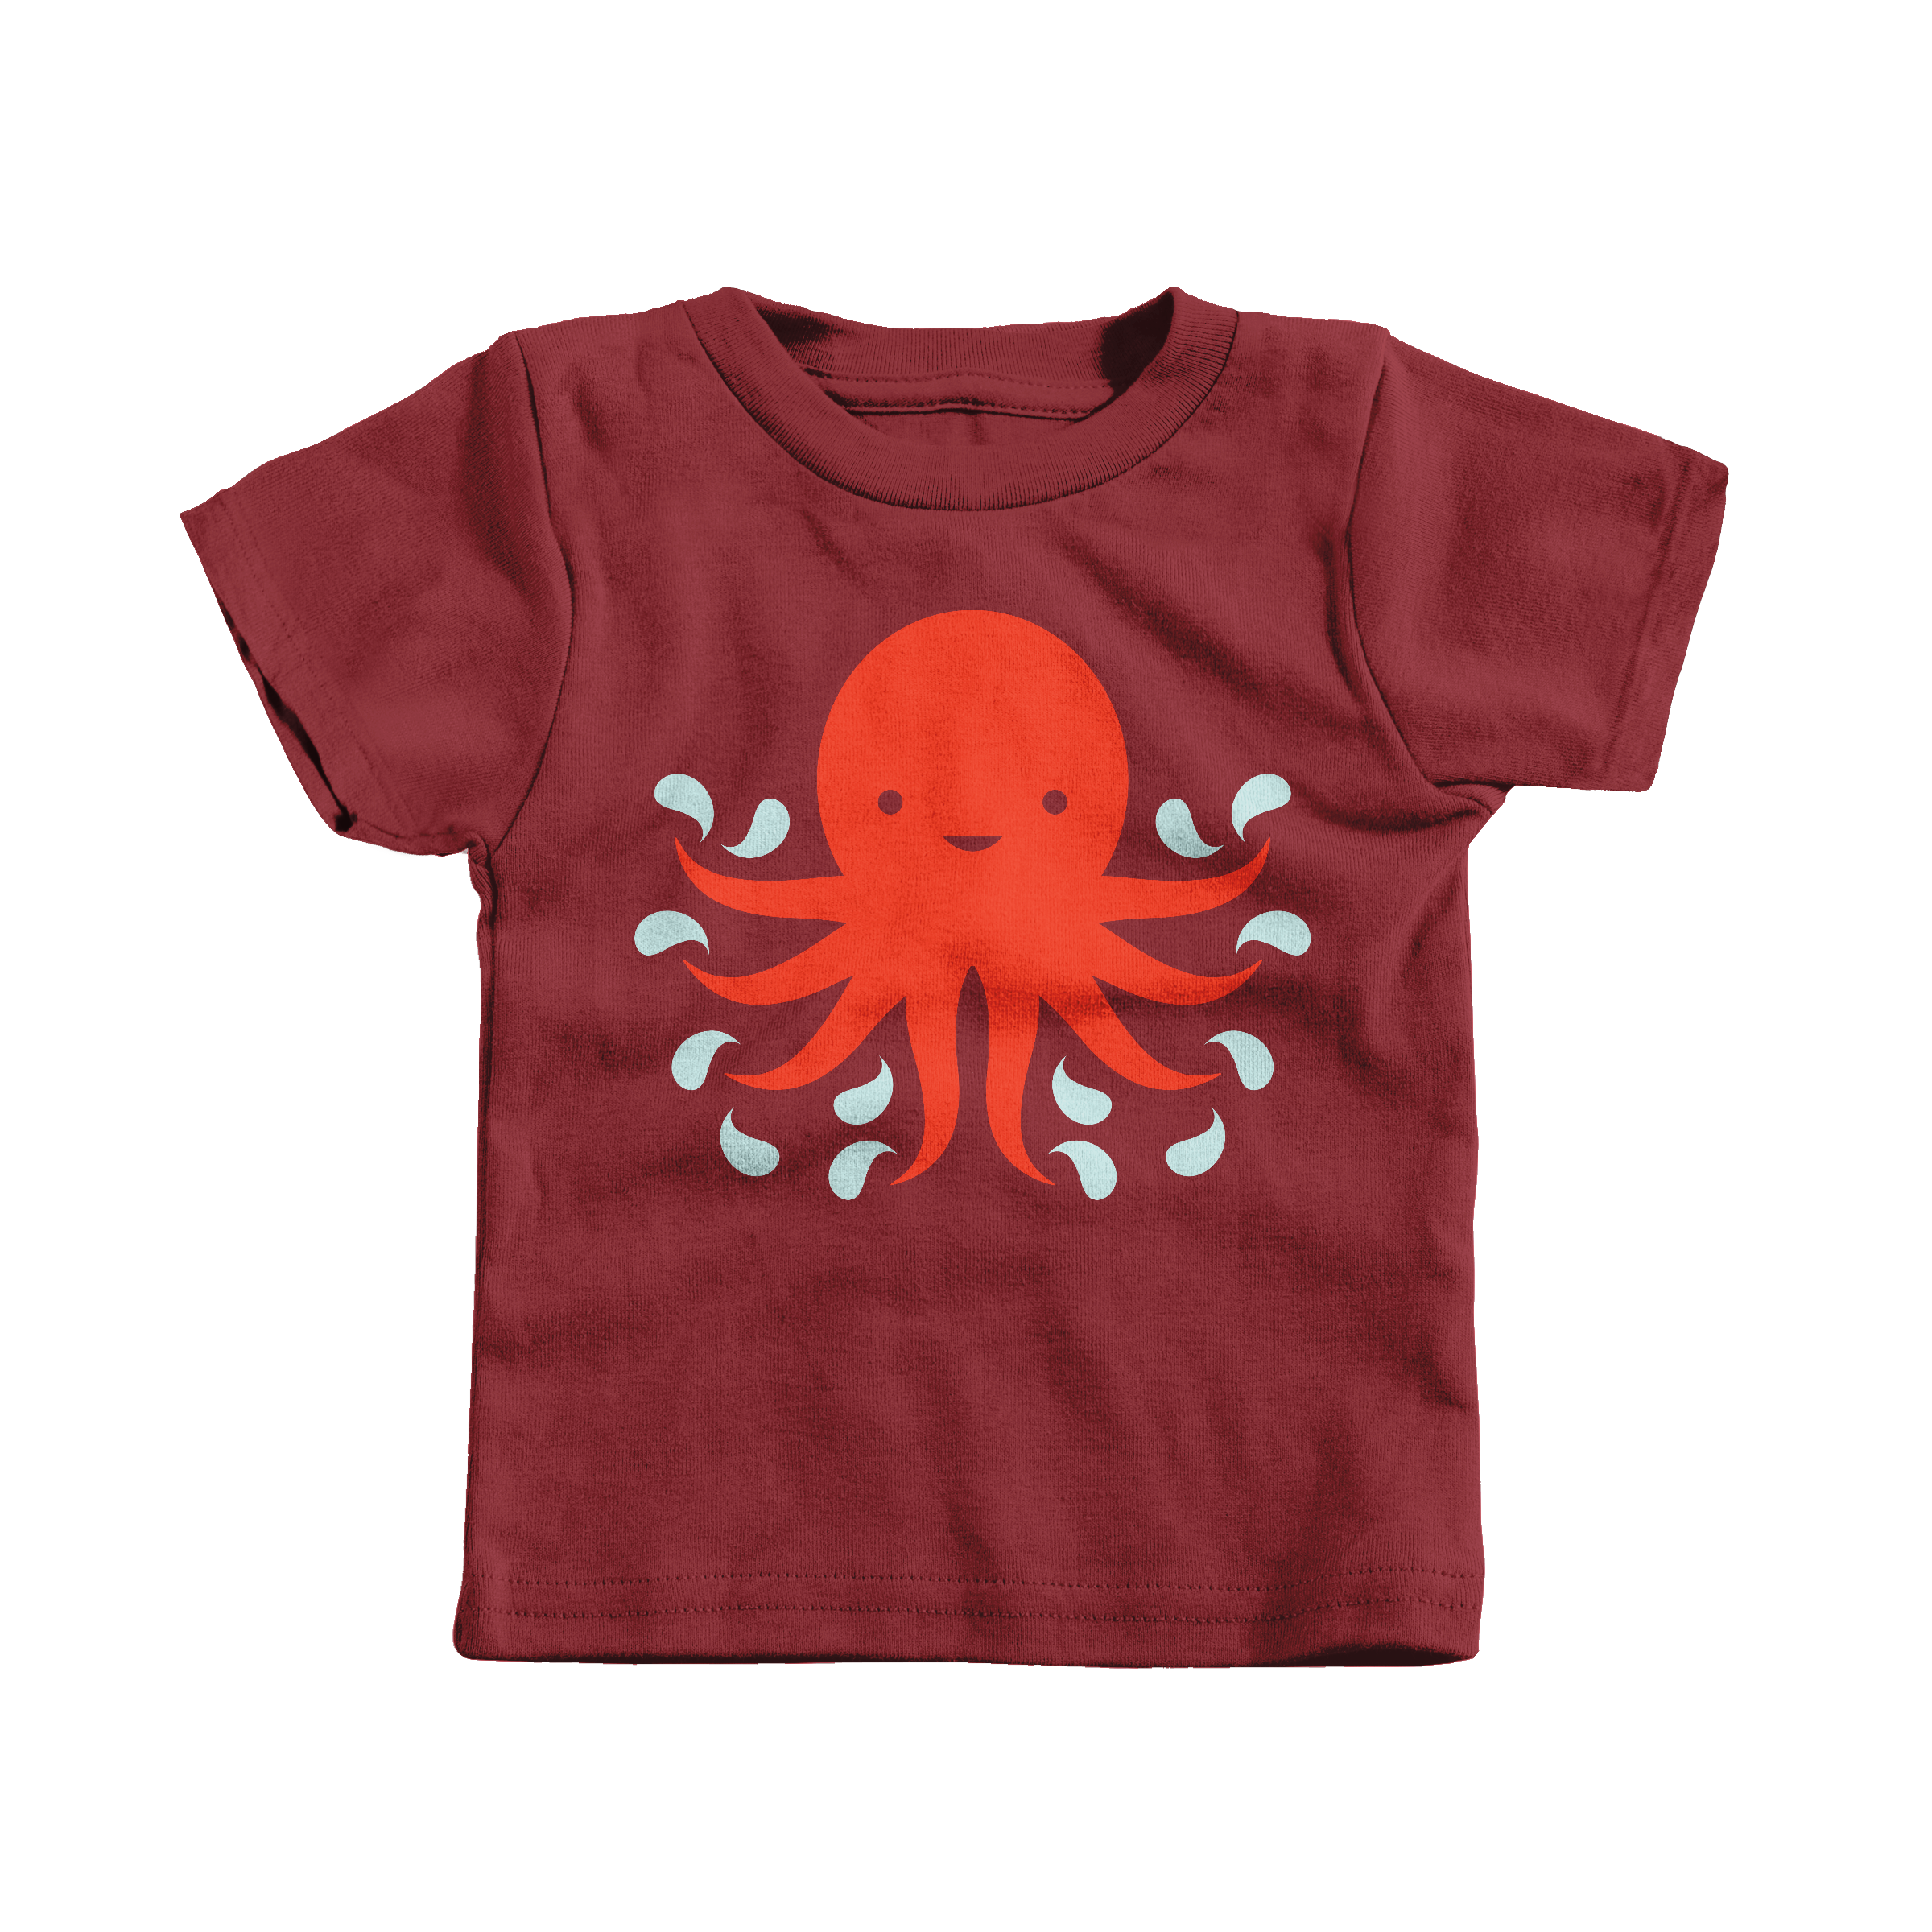 Splish Splash Garnet (T-Shirt)